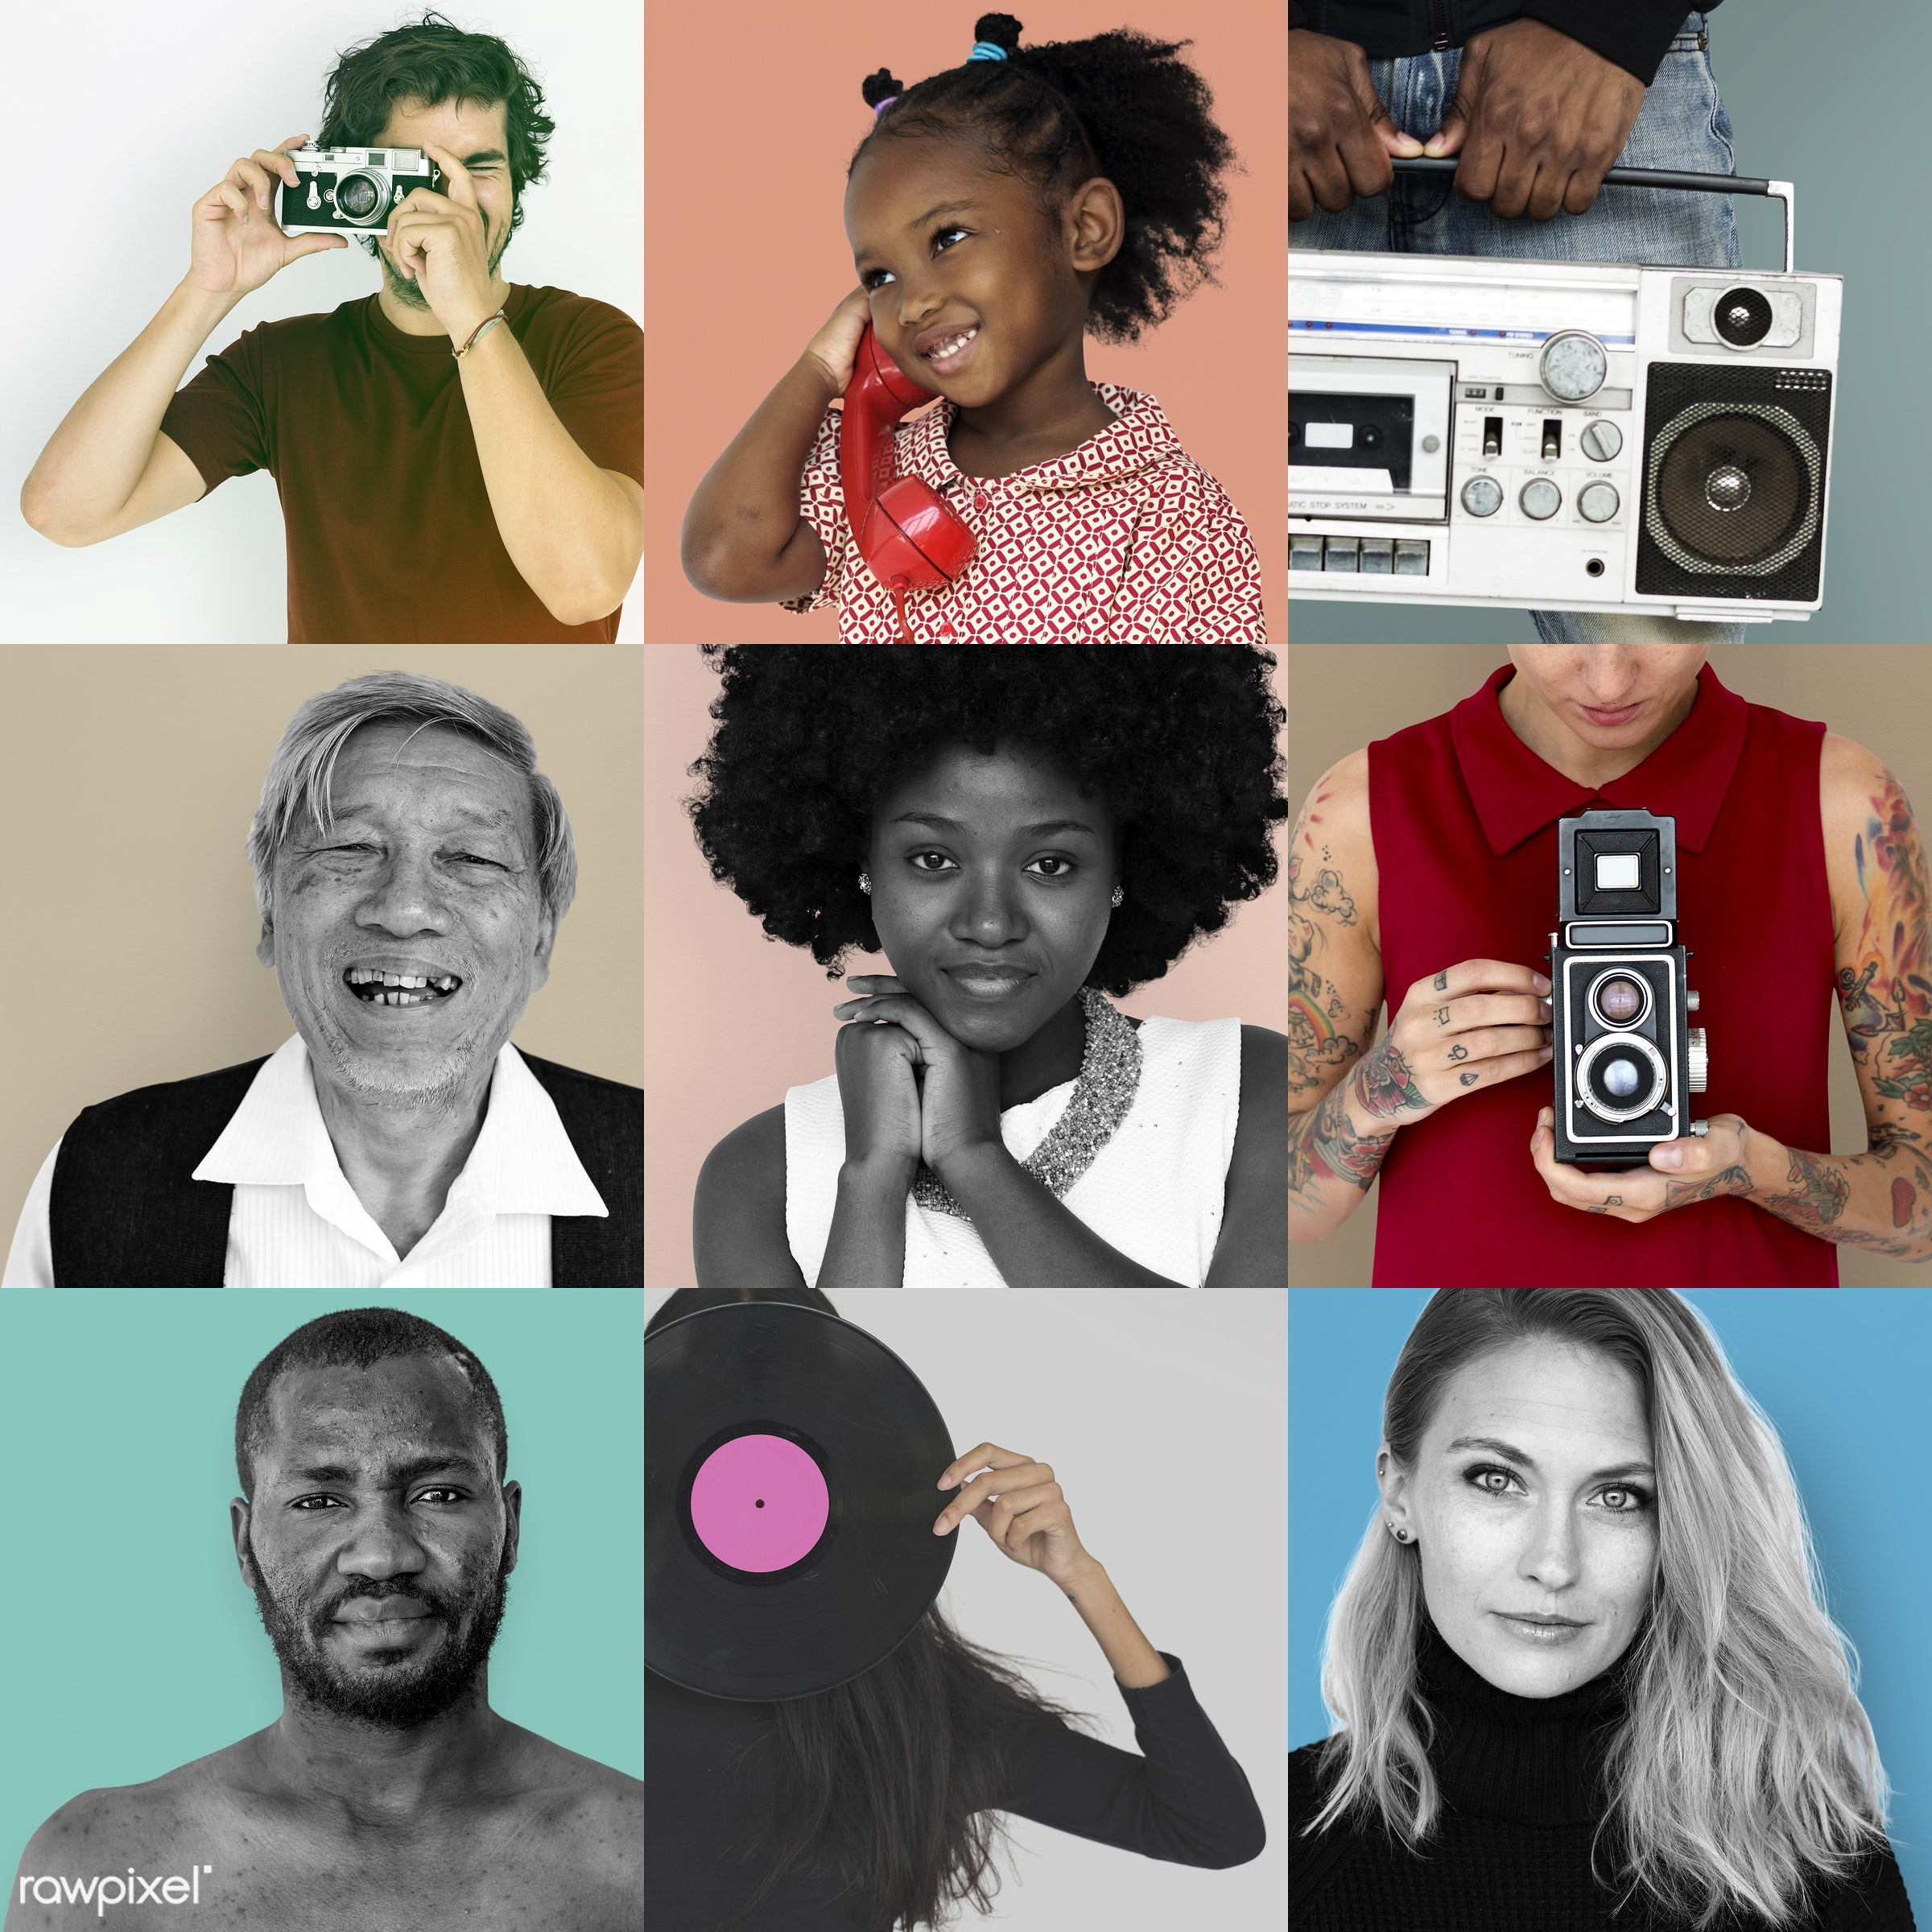 studio, old, fashion, diverse, set, retro, equipment, collection, people, style, woman, vinyl, mixed, collage, men, classic...